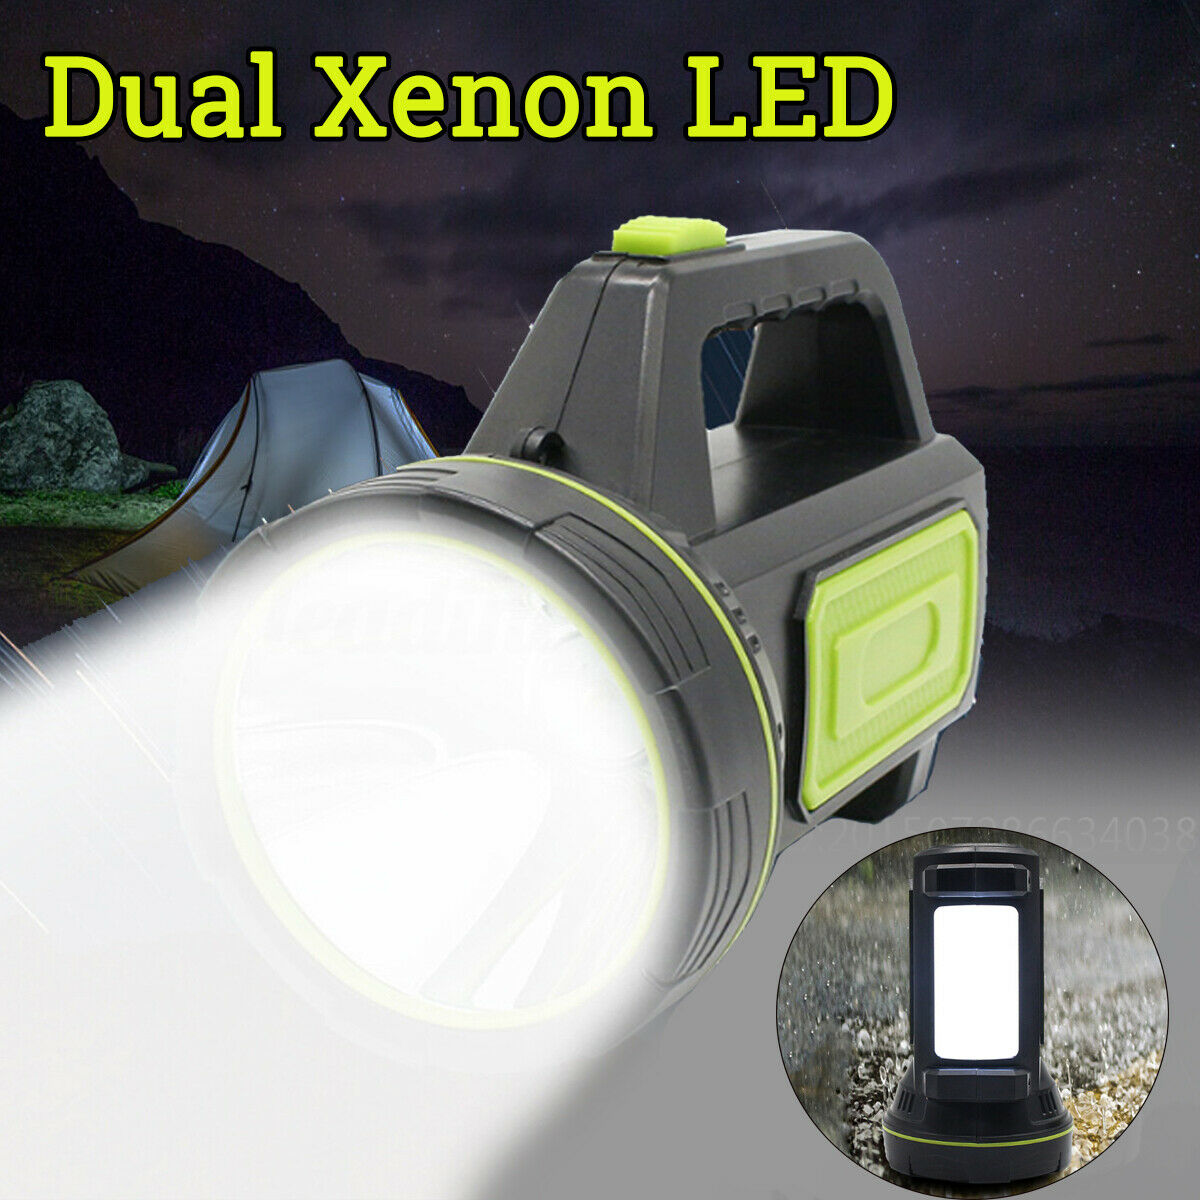 10W Xenon LED Rechargeable Work Light Torch Candle Spotlight Hand Lamp Black